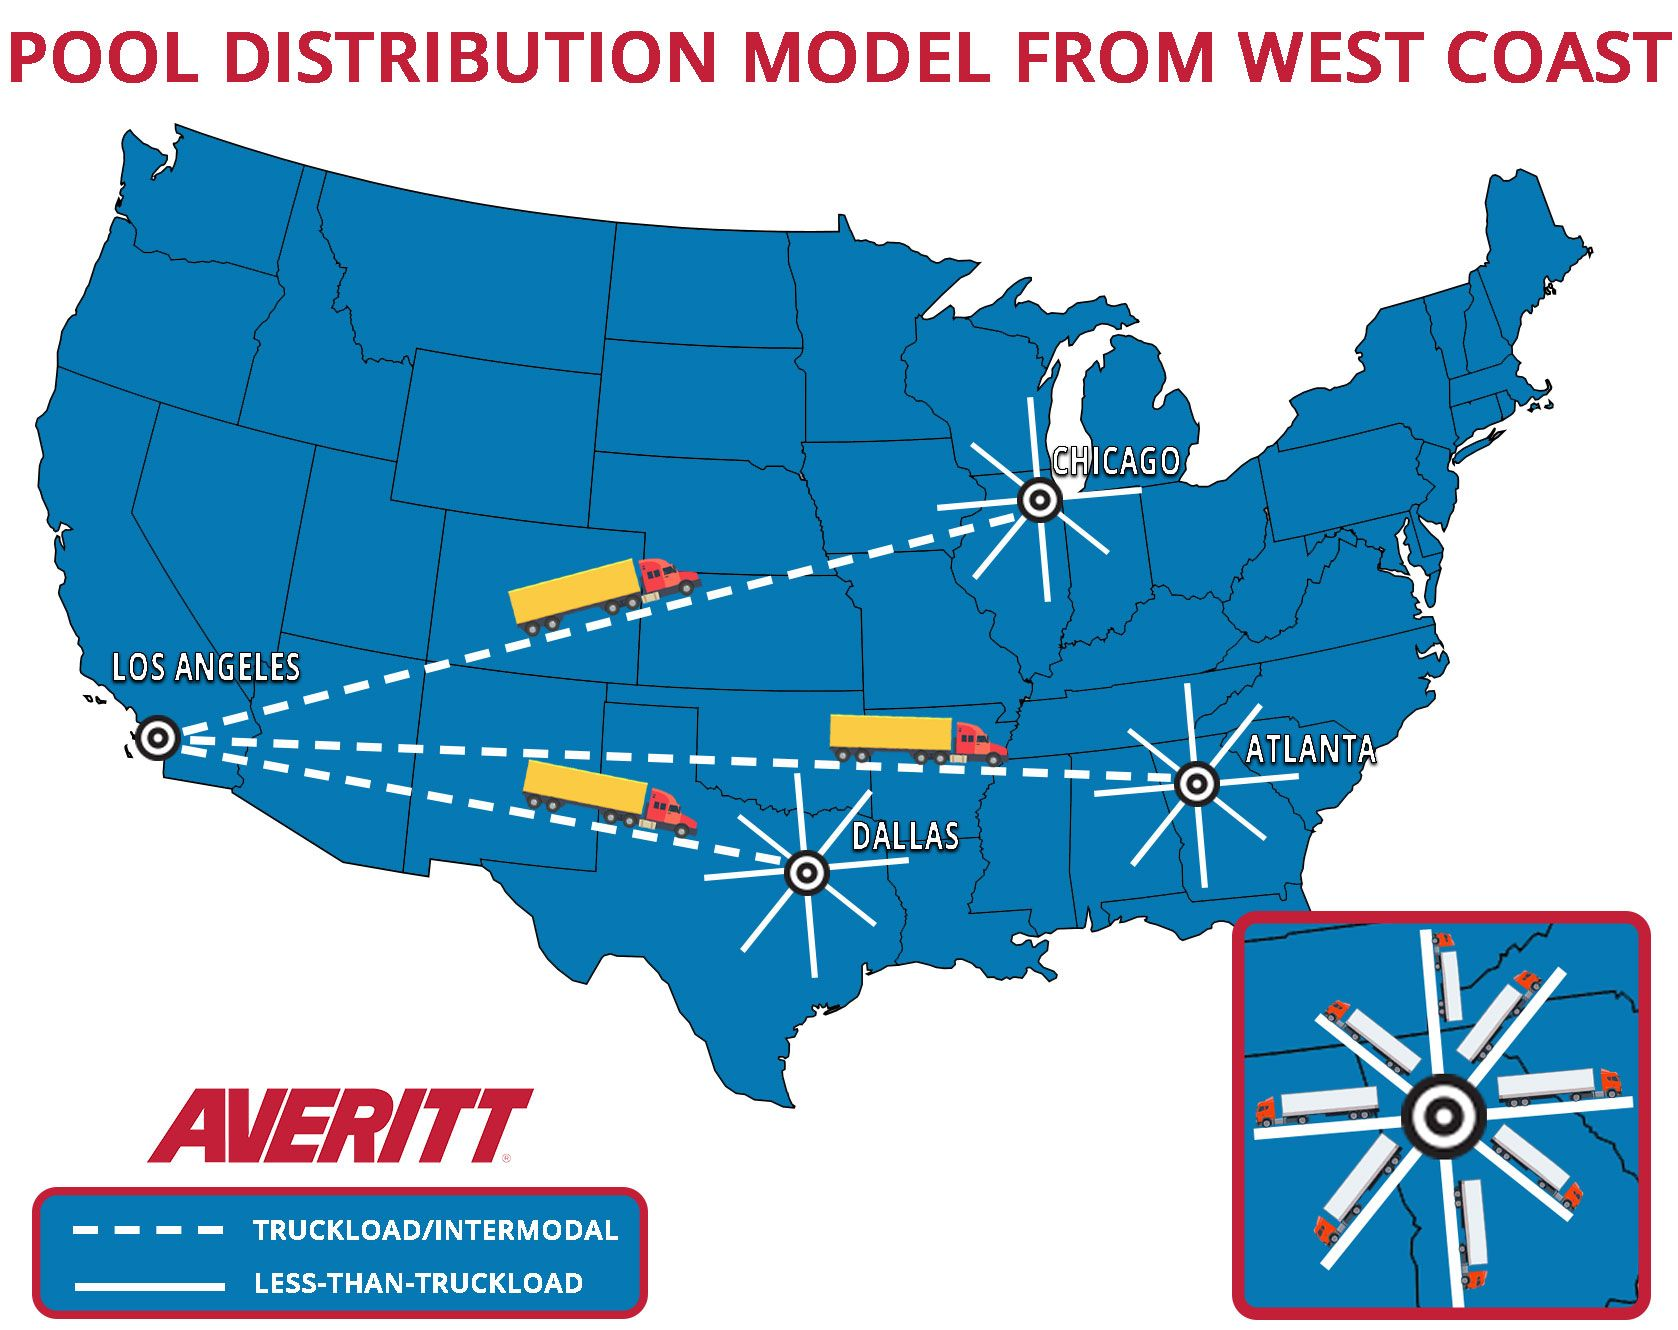 Example of a pool distribution supply chain strategy from the West Coast